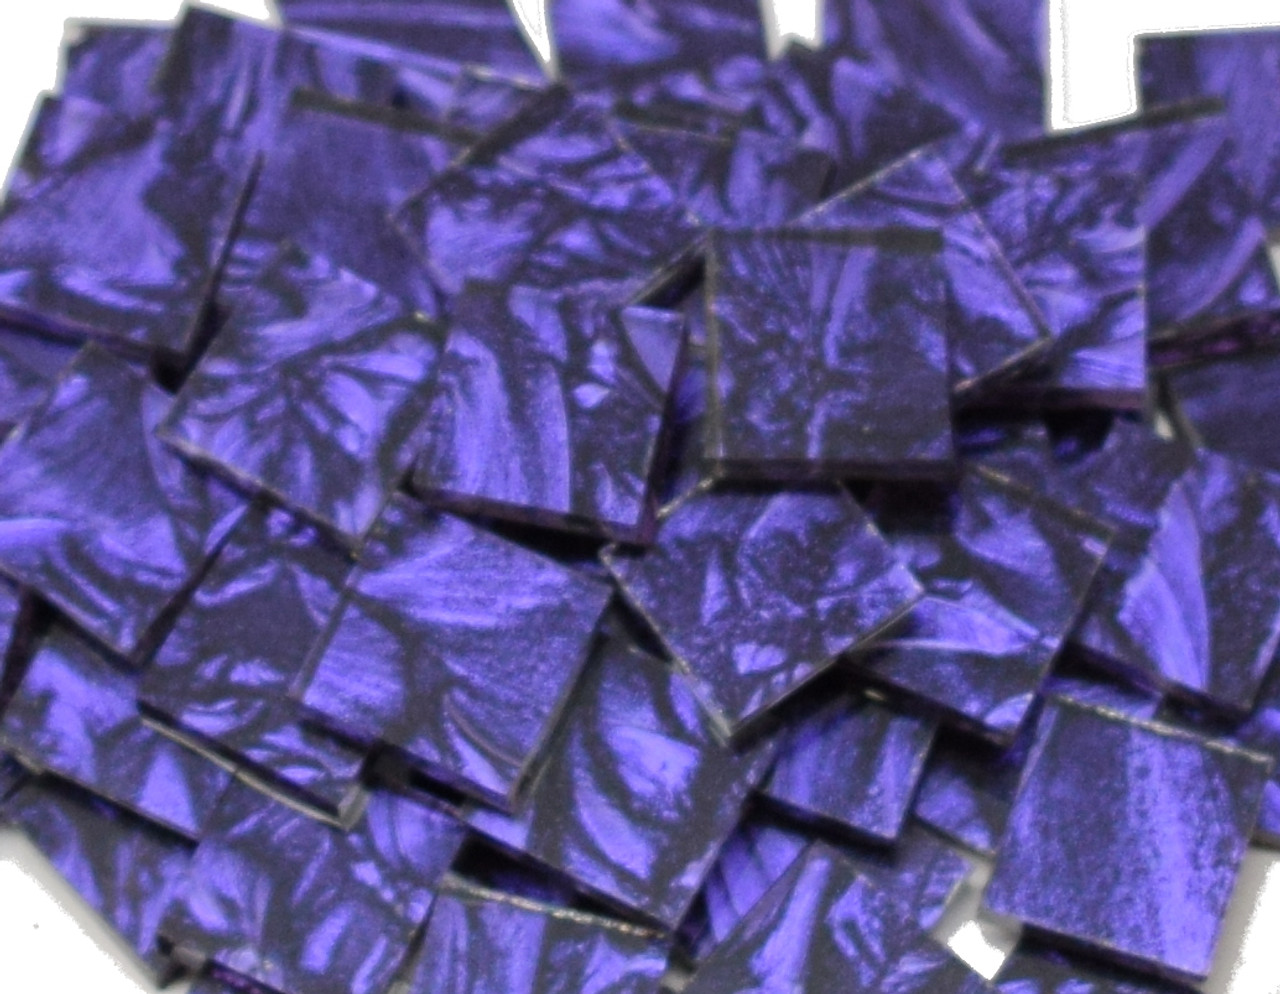 Bulk Discount - Violet Van Gogh Stained Glass Mosaic Tiles